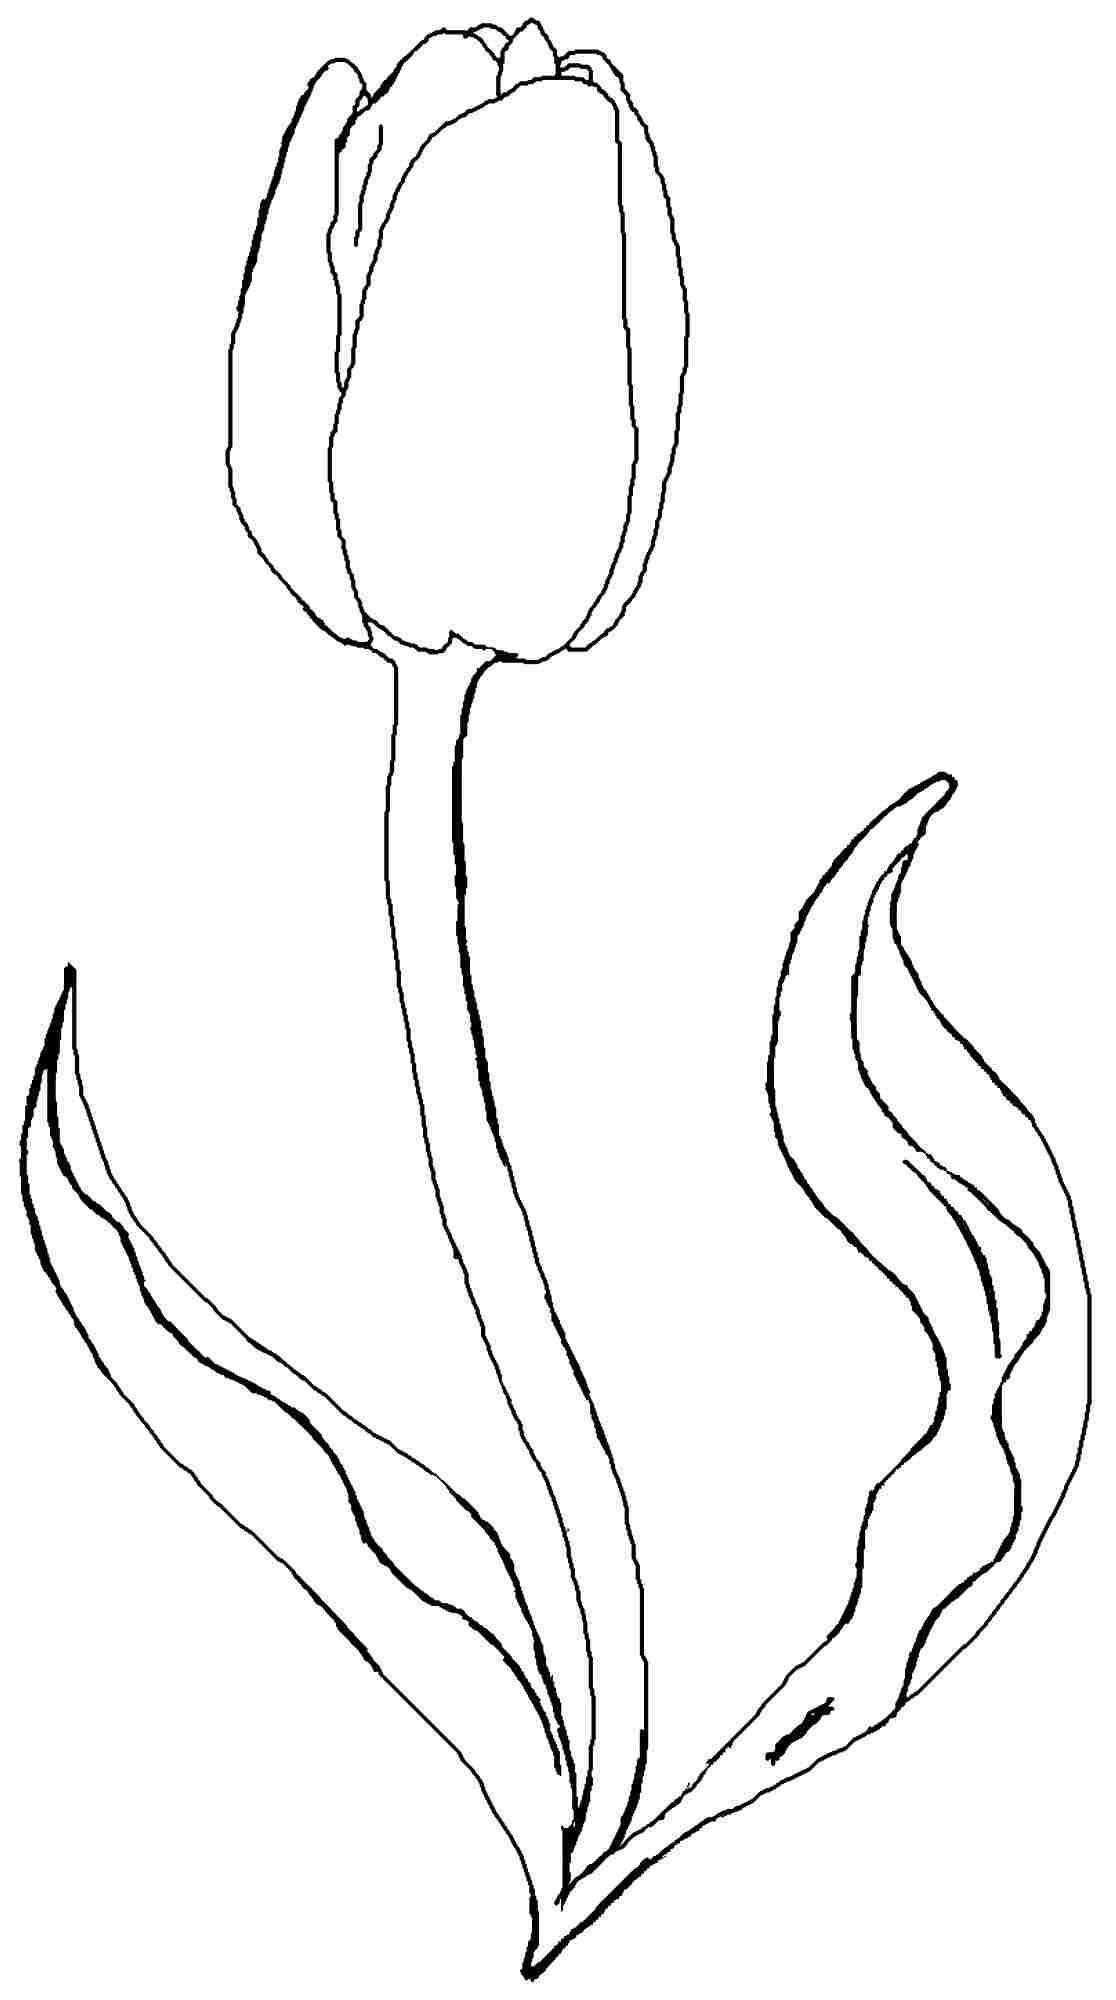 Tulip Flower Coloring Pages Free Printable Tulip Coloring | Sketch - Free Printable Tulip Coloring Pages